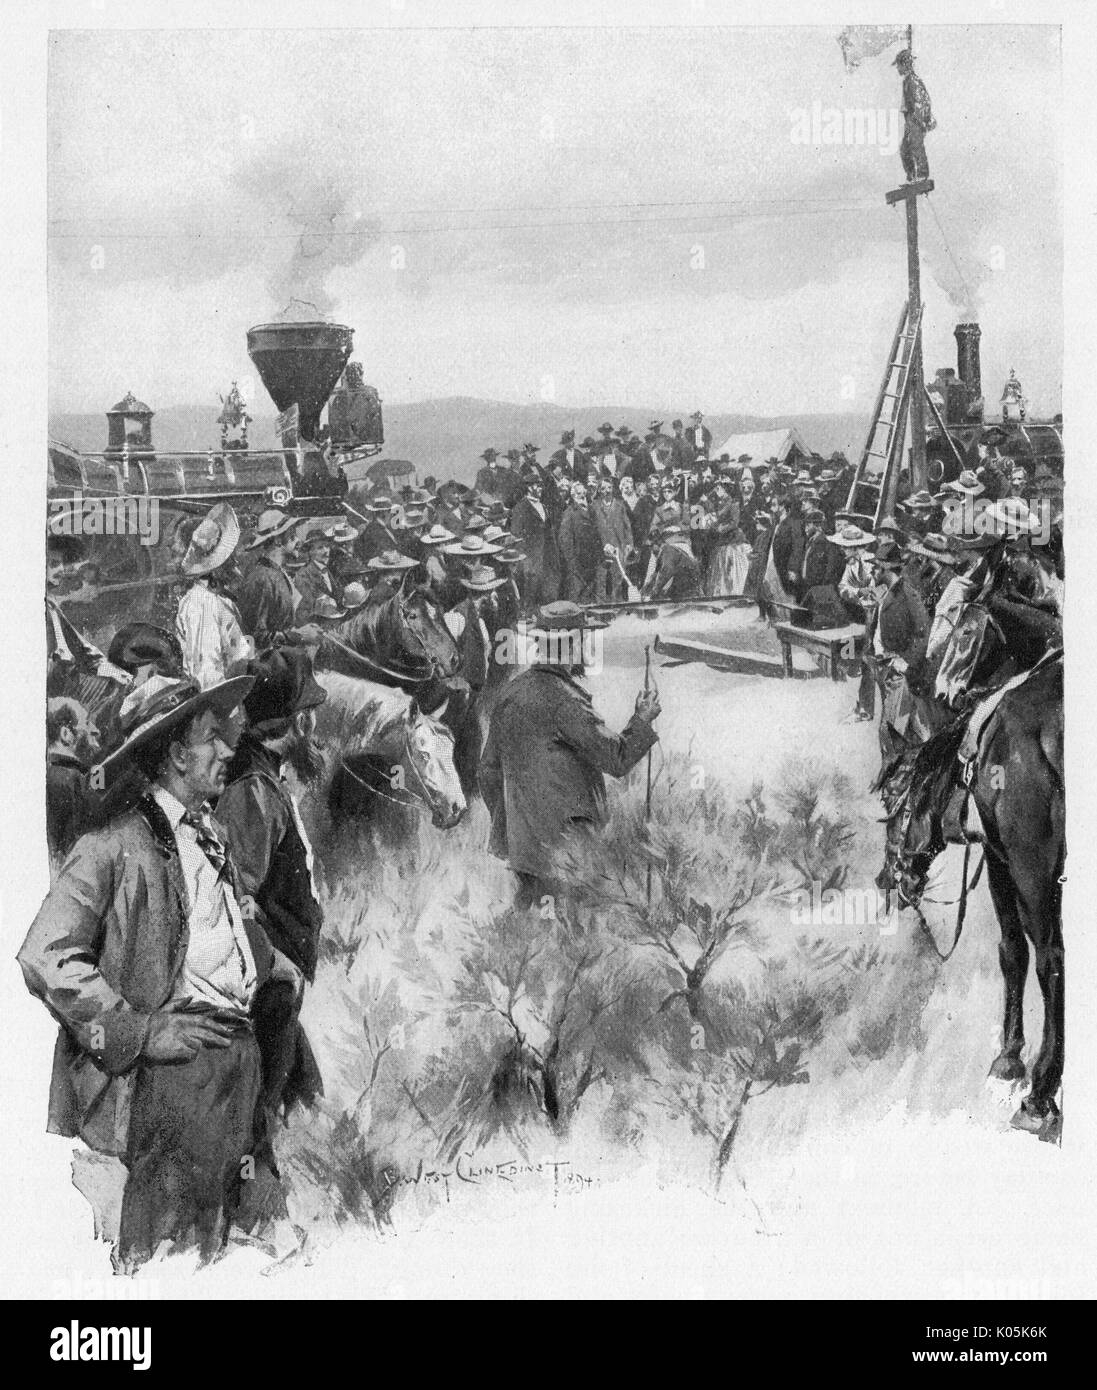 Completion of the Union  Pacific Railroad, the first transcontinental rail link,  completed at Promontory Point, Utah - driving home  the last spike     Date: 10 May 1869 - Stock Image